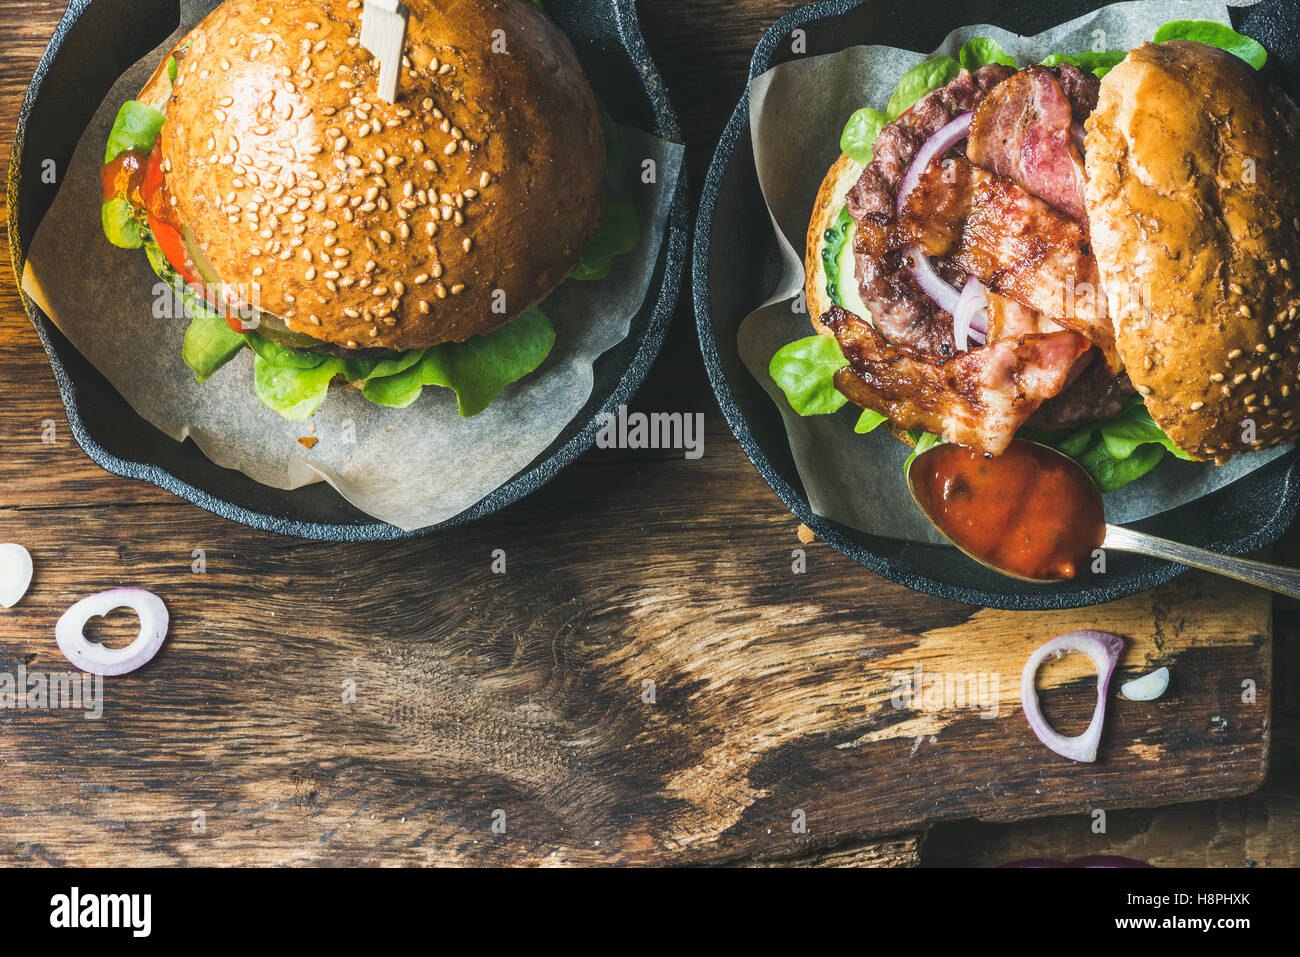 Homemade beef burgers with crispy bacon and vegetables in pans - Stock Image